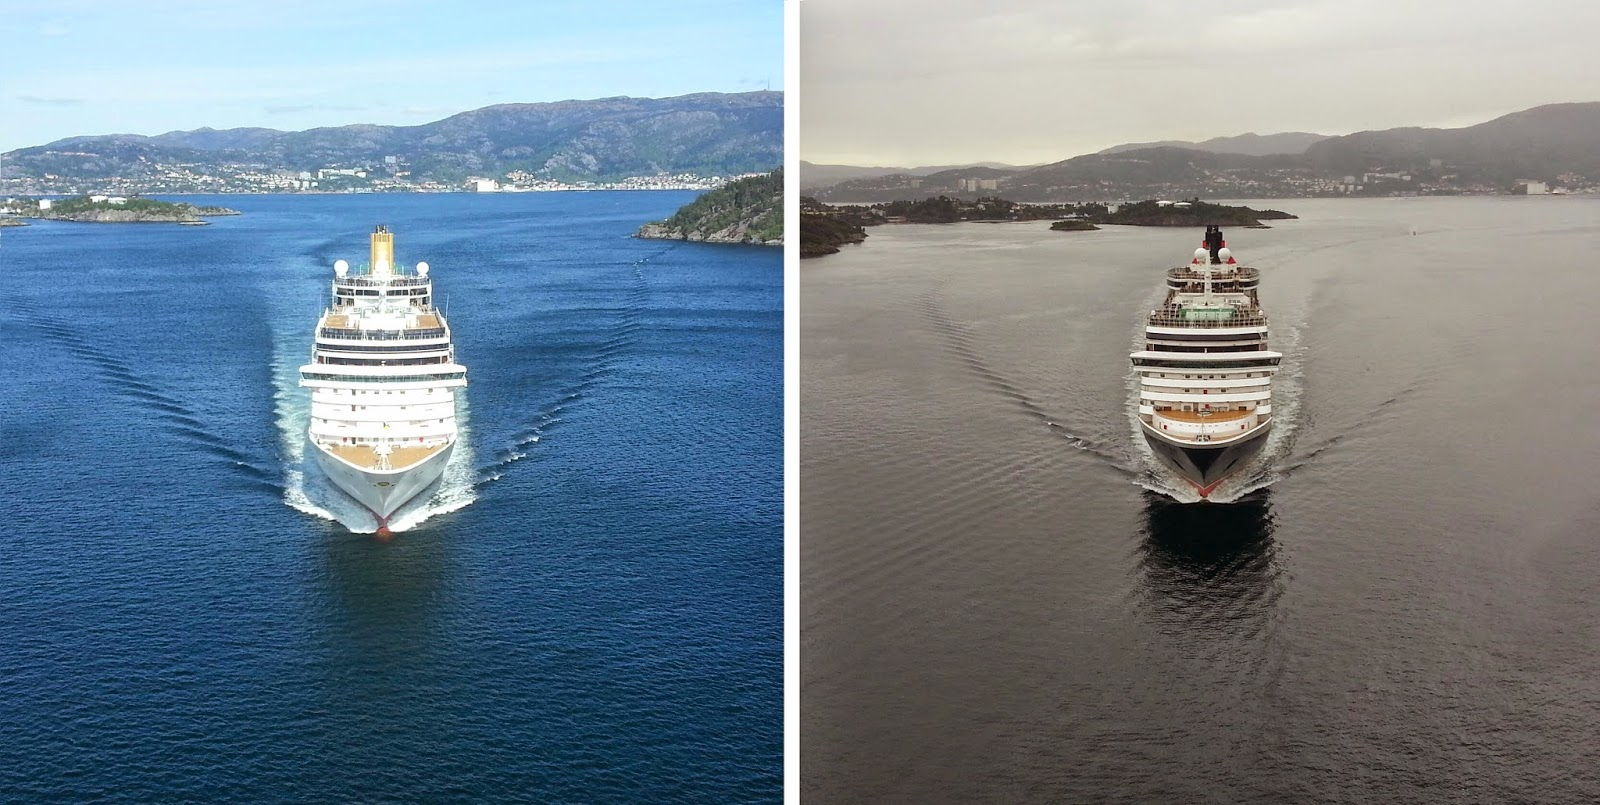 P&O's Arcadia and Cunard's Queen Victoria - comparison